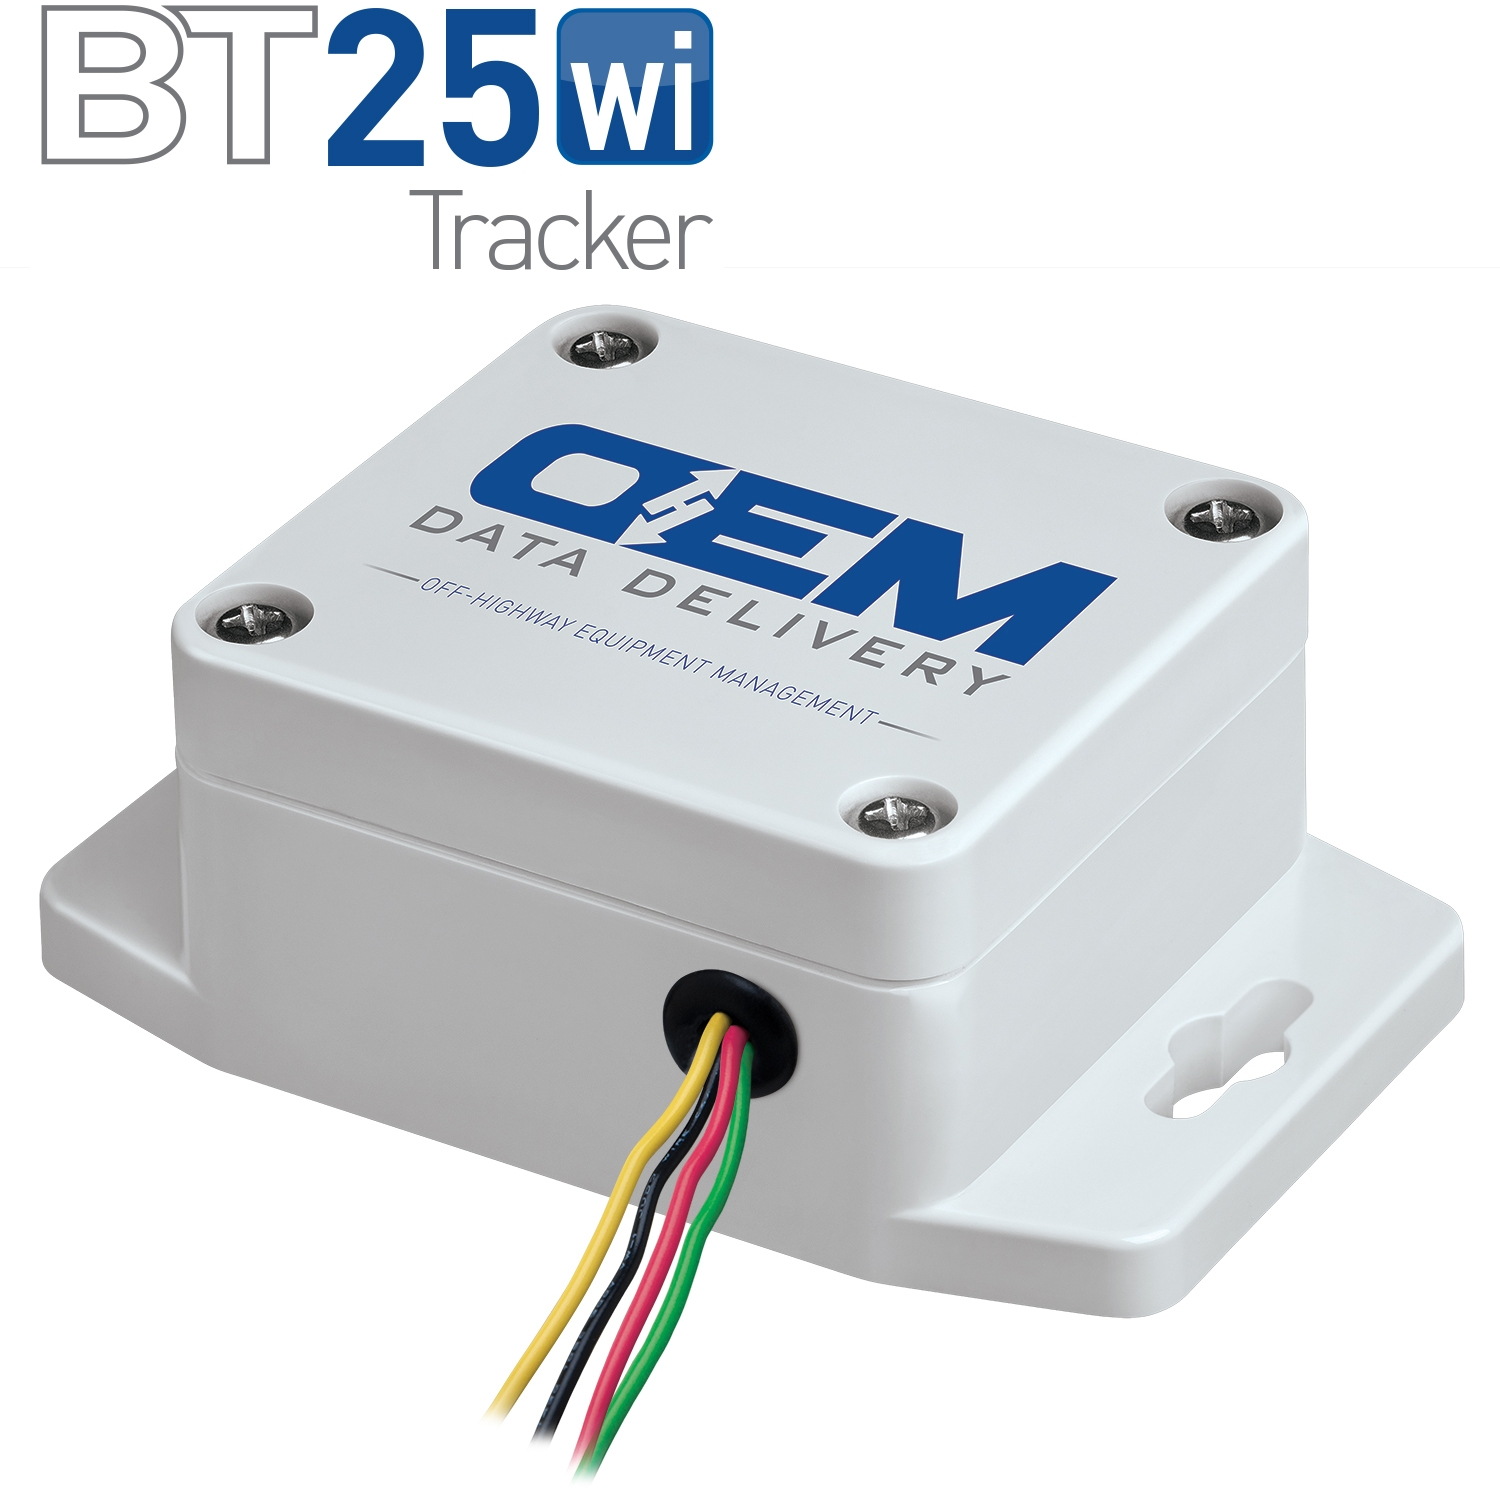 BT25wi Tracker with Logo